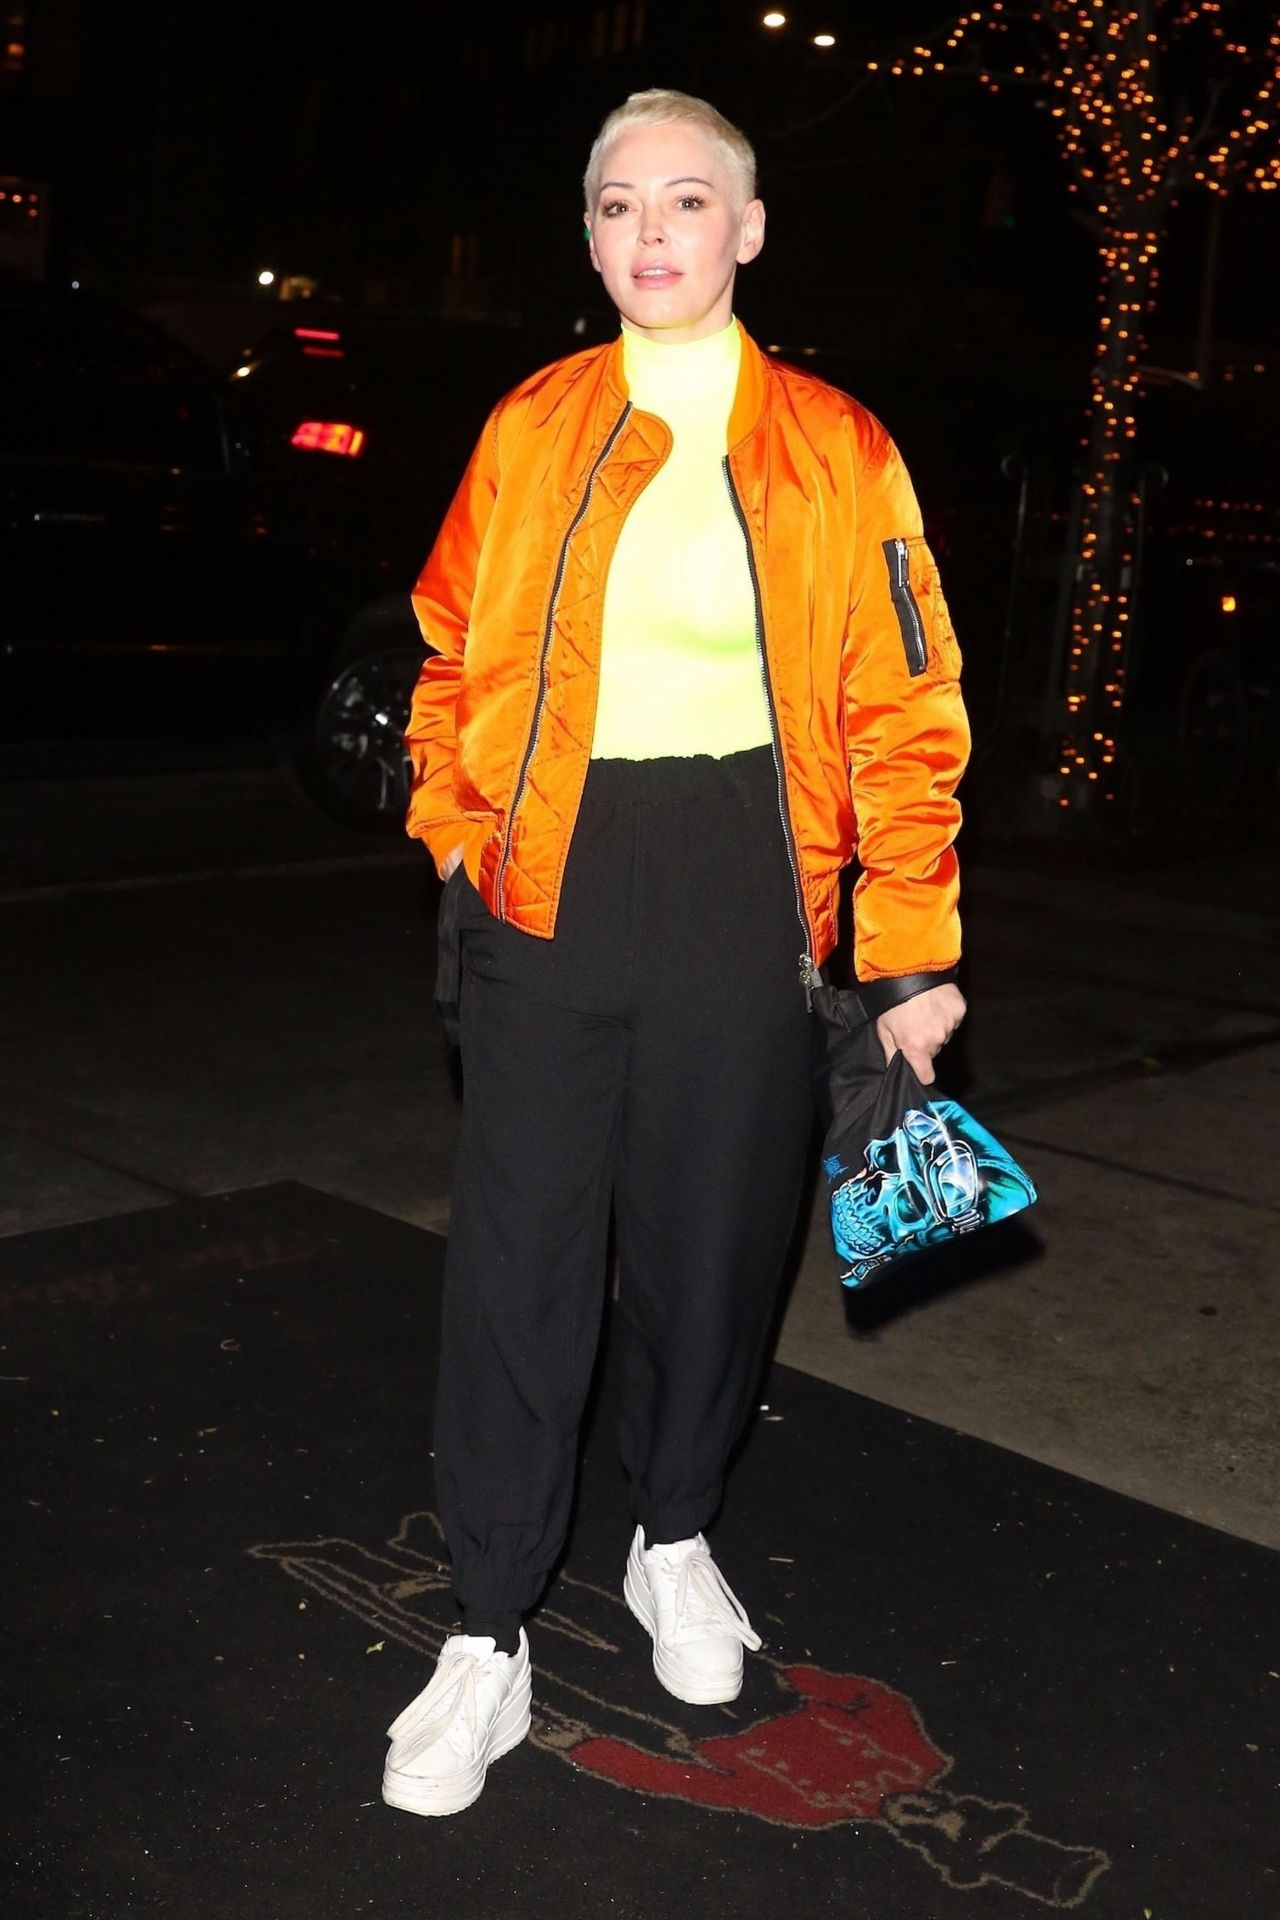 Rose Mcgowan Outside The Bowery Hotel 02 05 2019